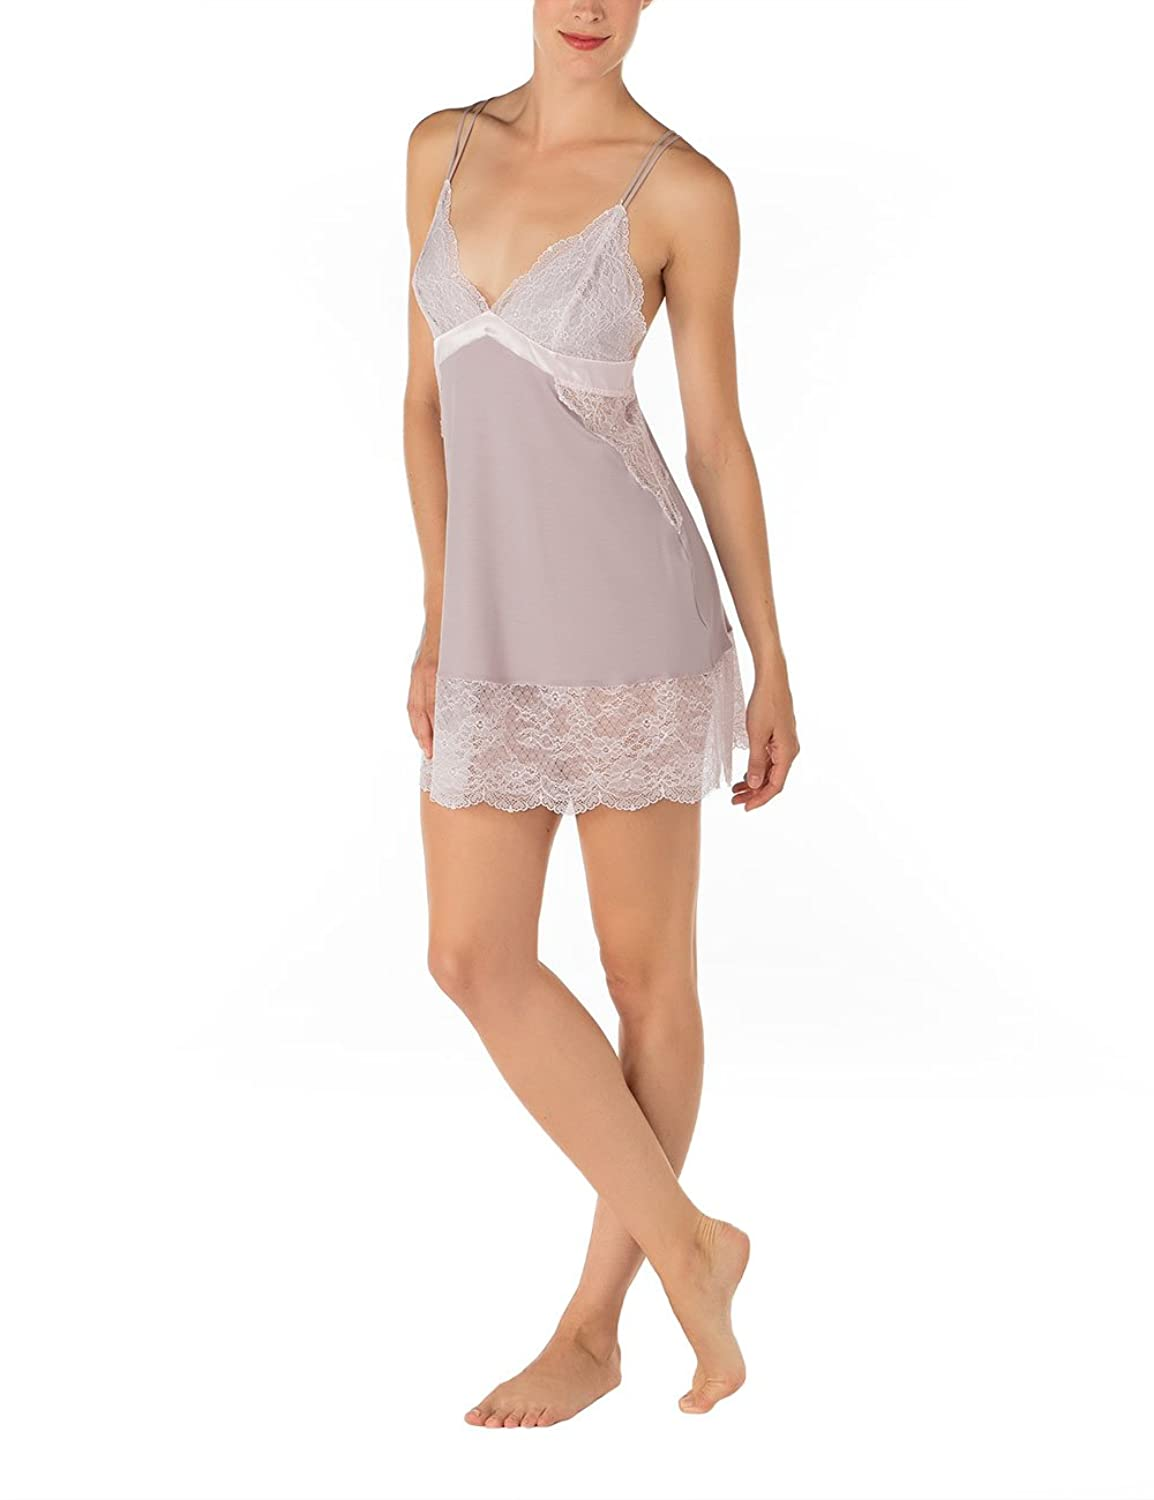 Calida Damen Negligee Negligé Ltd Edition Ascona